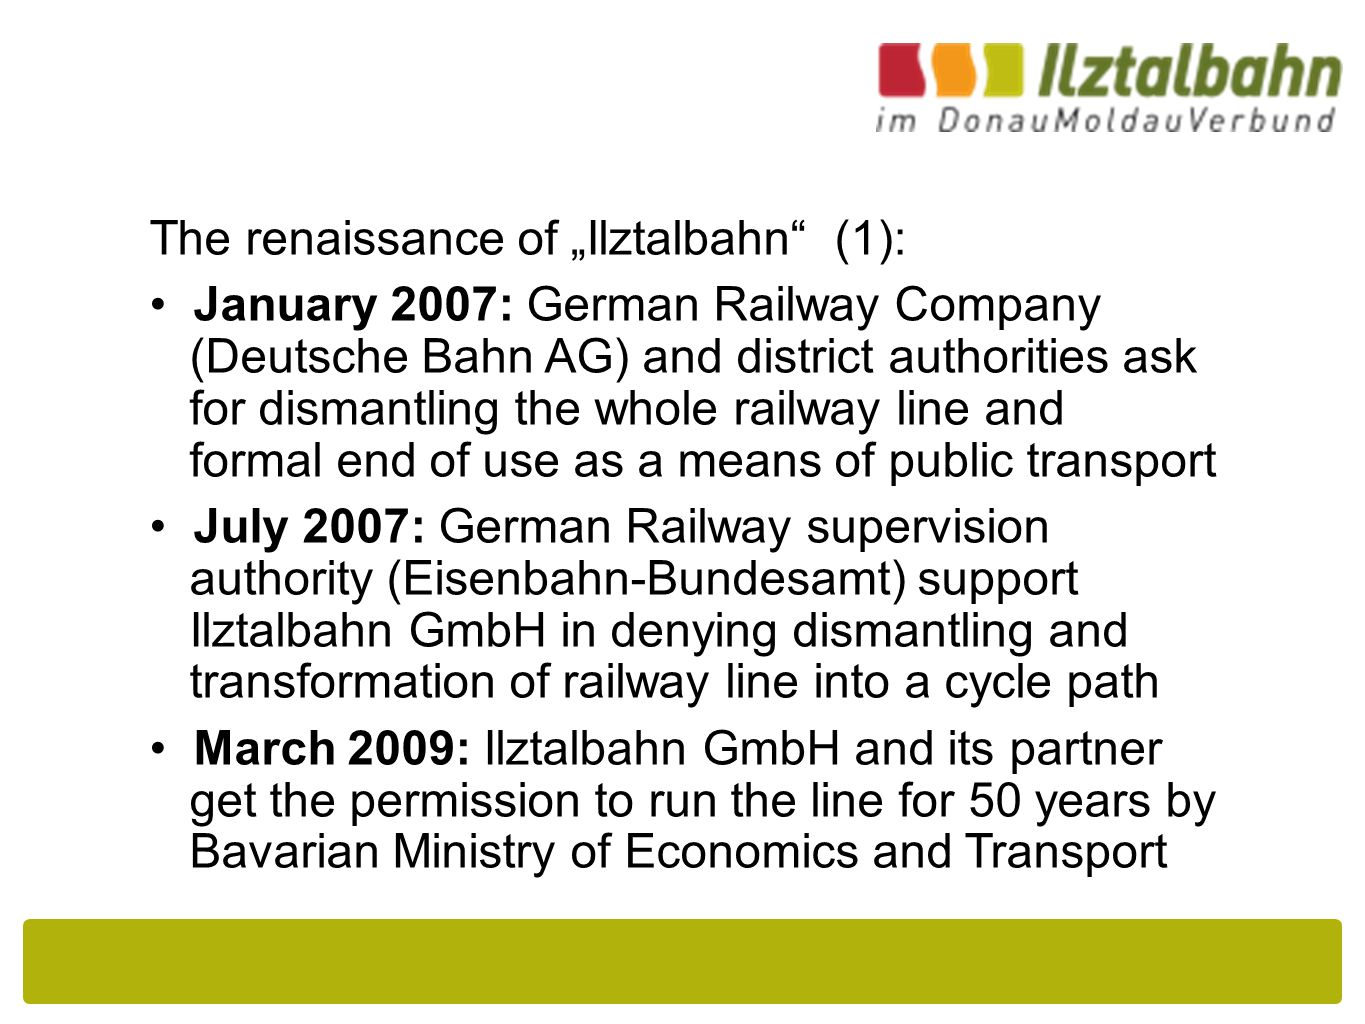 """The renaissance of """"Ilztalbahn (1): January 2007: German Railway Company (Deutsche Bahn AG) and district authorities ask for dismantling the whole railway line and formal end of use as a means of public transport July 2007: German Railway supervision authority (Eisenbahn-Bundesamt) support Ilztalbahn GmbH in denying dismantling and transformation of railway line into a cycle path March 2009: Ilztalbahn GmbH and its partner get the permission to run the line for 50 years by Bavarian Ministry of Economics and Transport"""